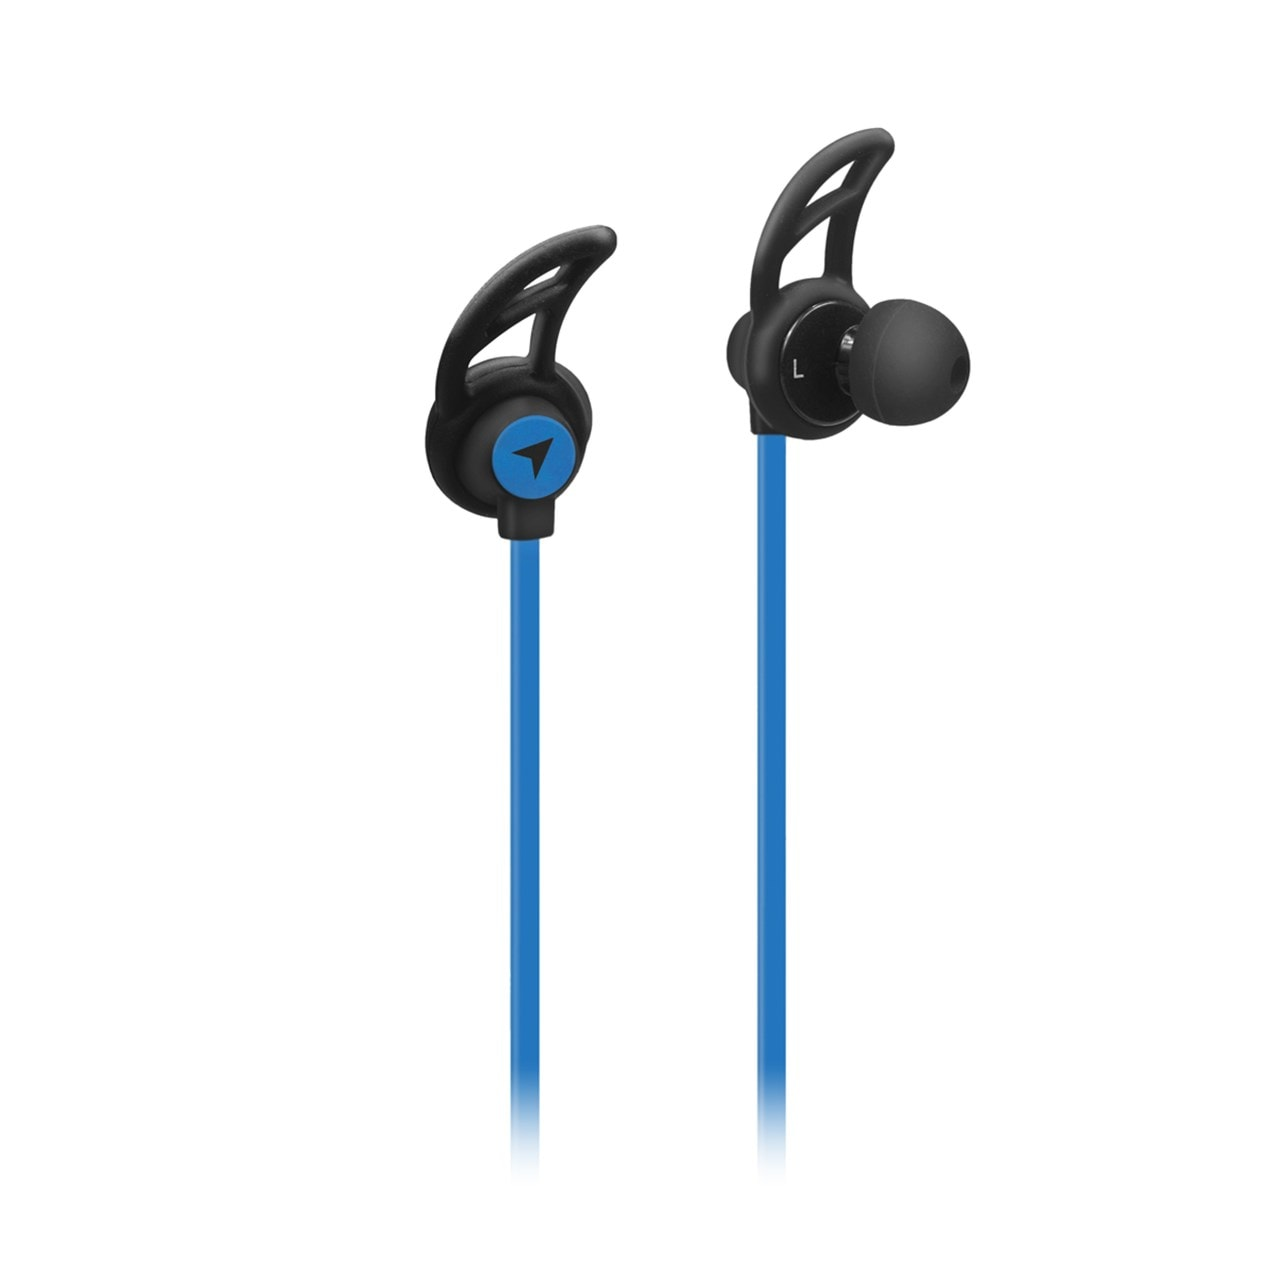 Roam Sports Pro Blue Bluetooth Earphones - 2